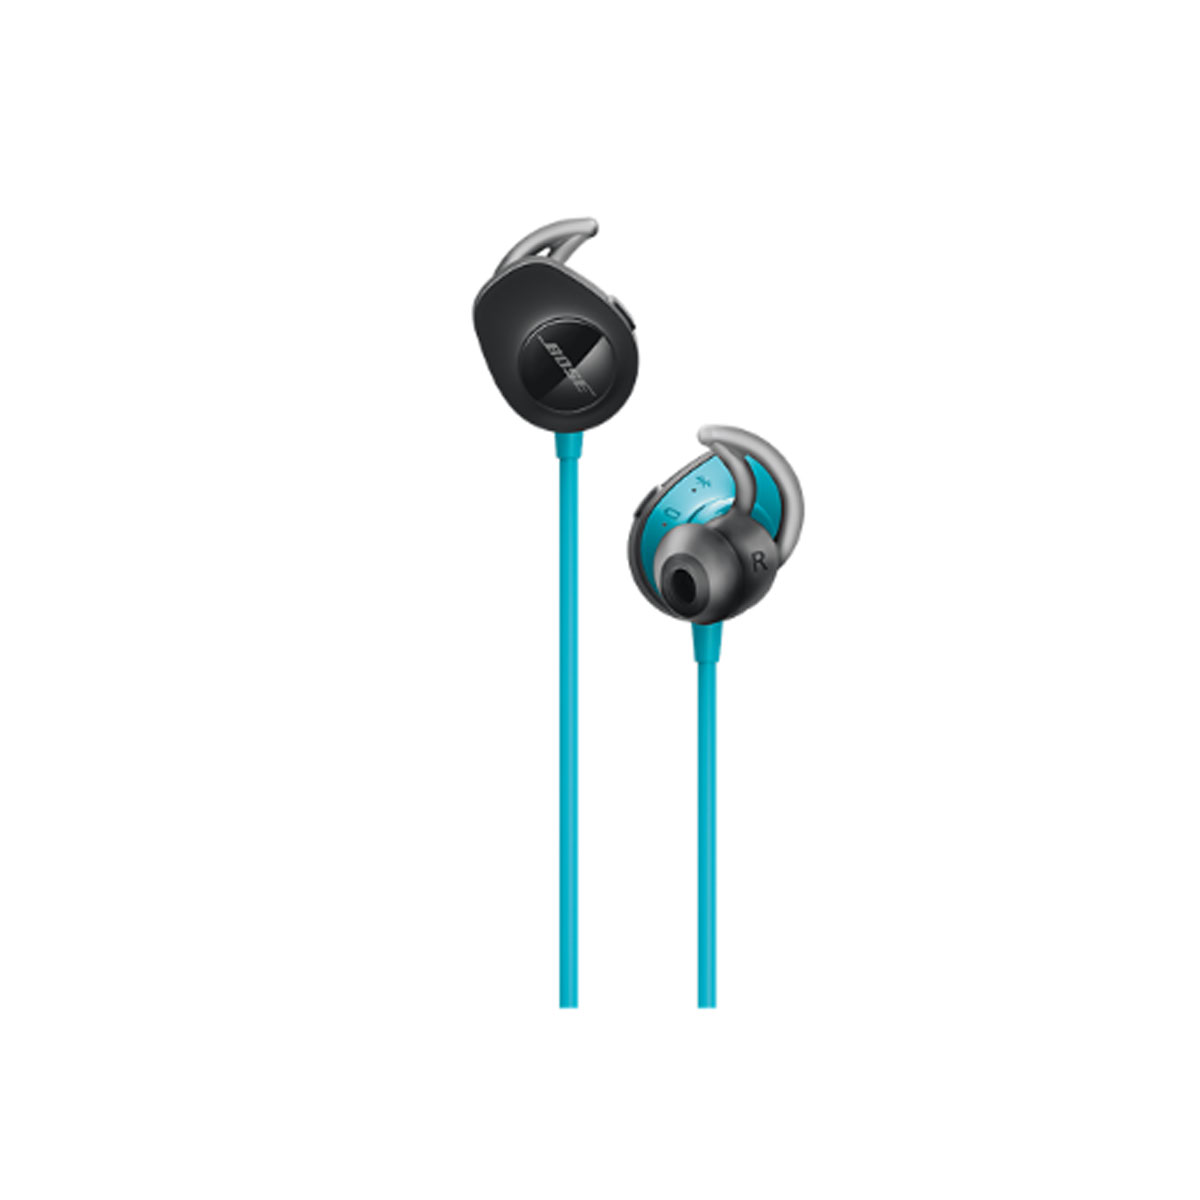 Bose - SoundSport in-ear headphones Black/Blue